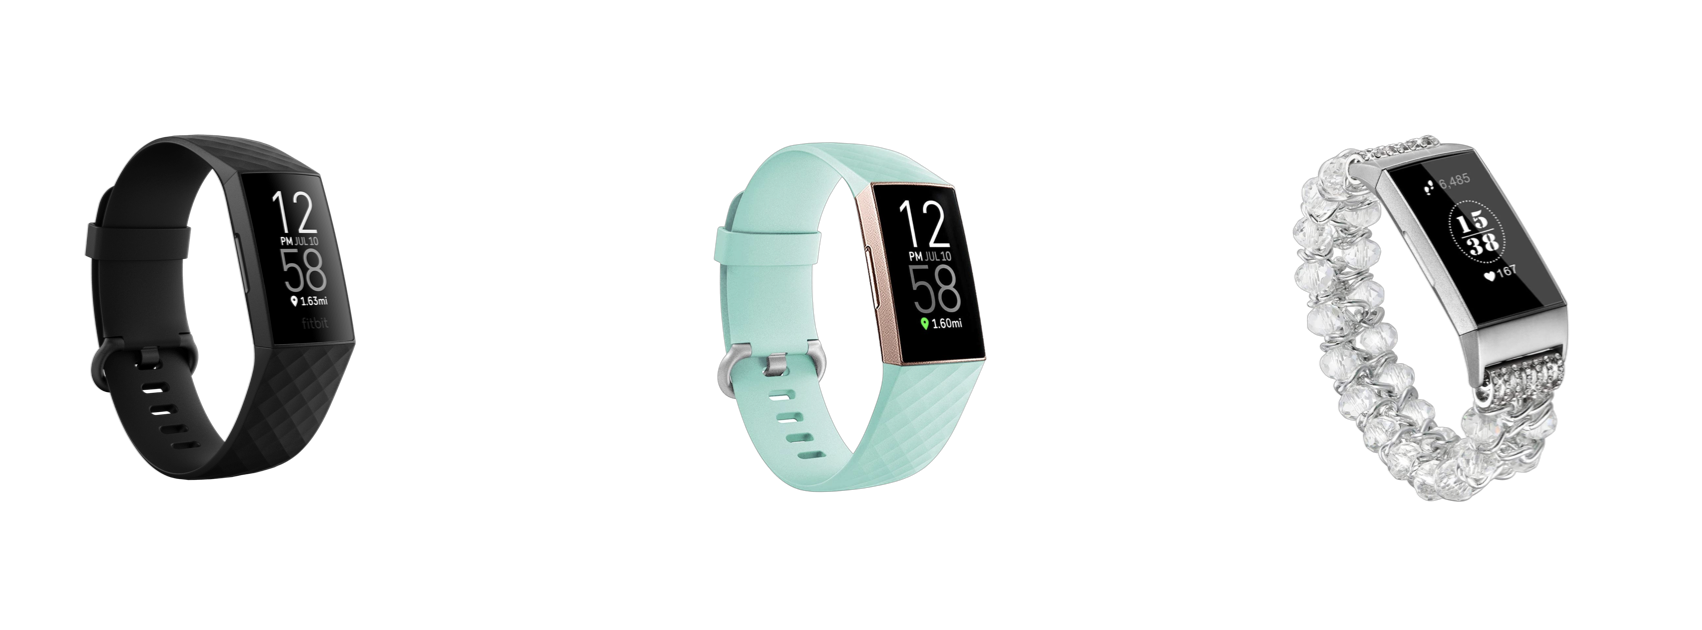 Black Fitbit Watch, Mint FItbit Band, Beaded Fitbit Band